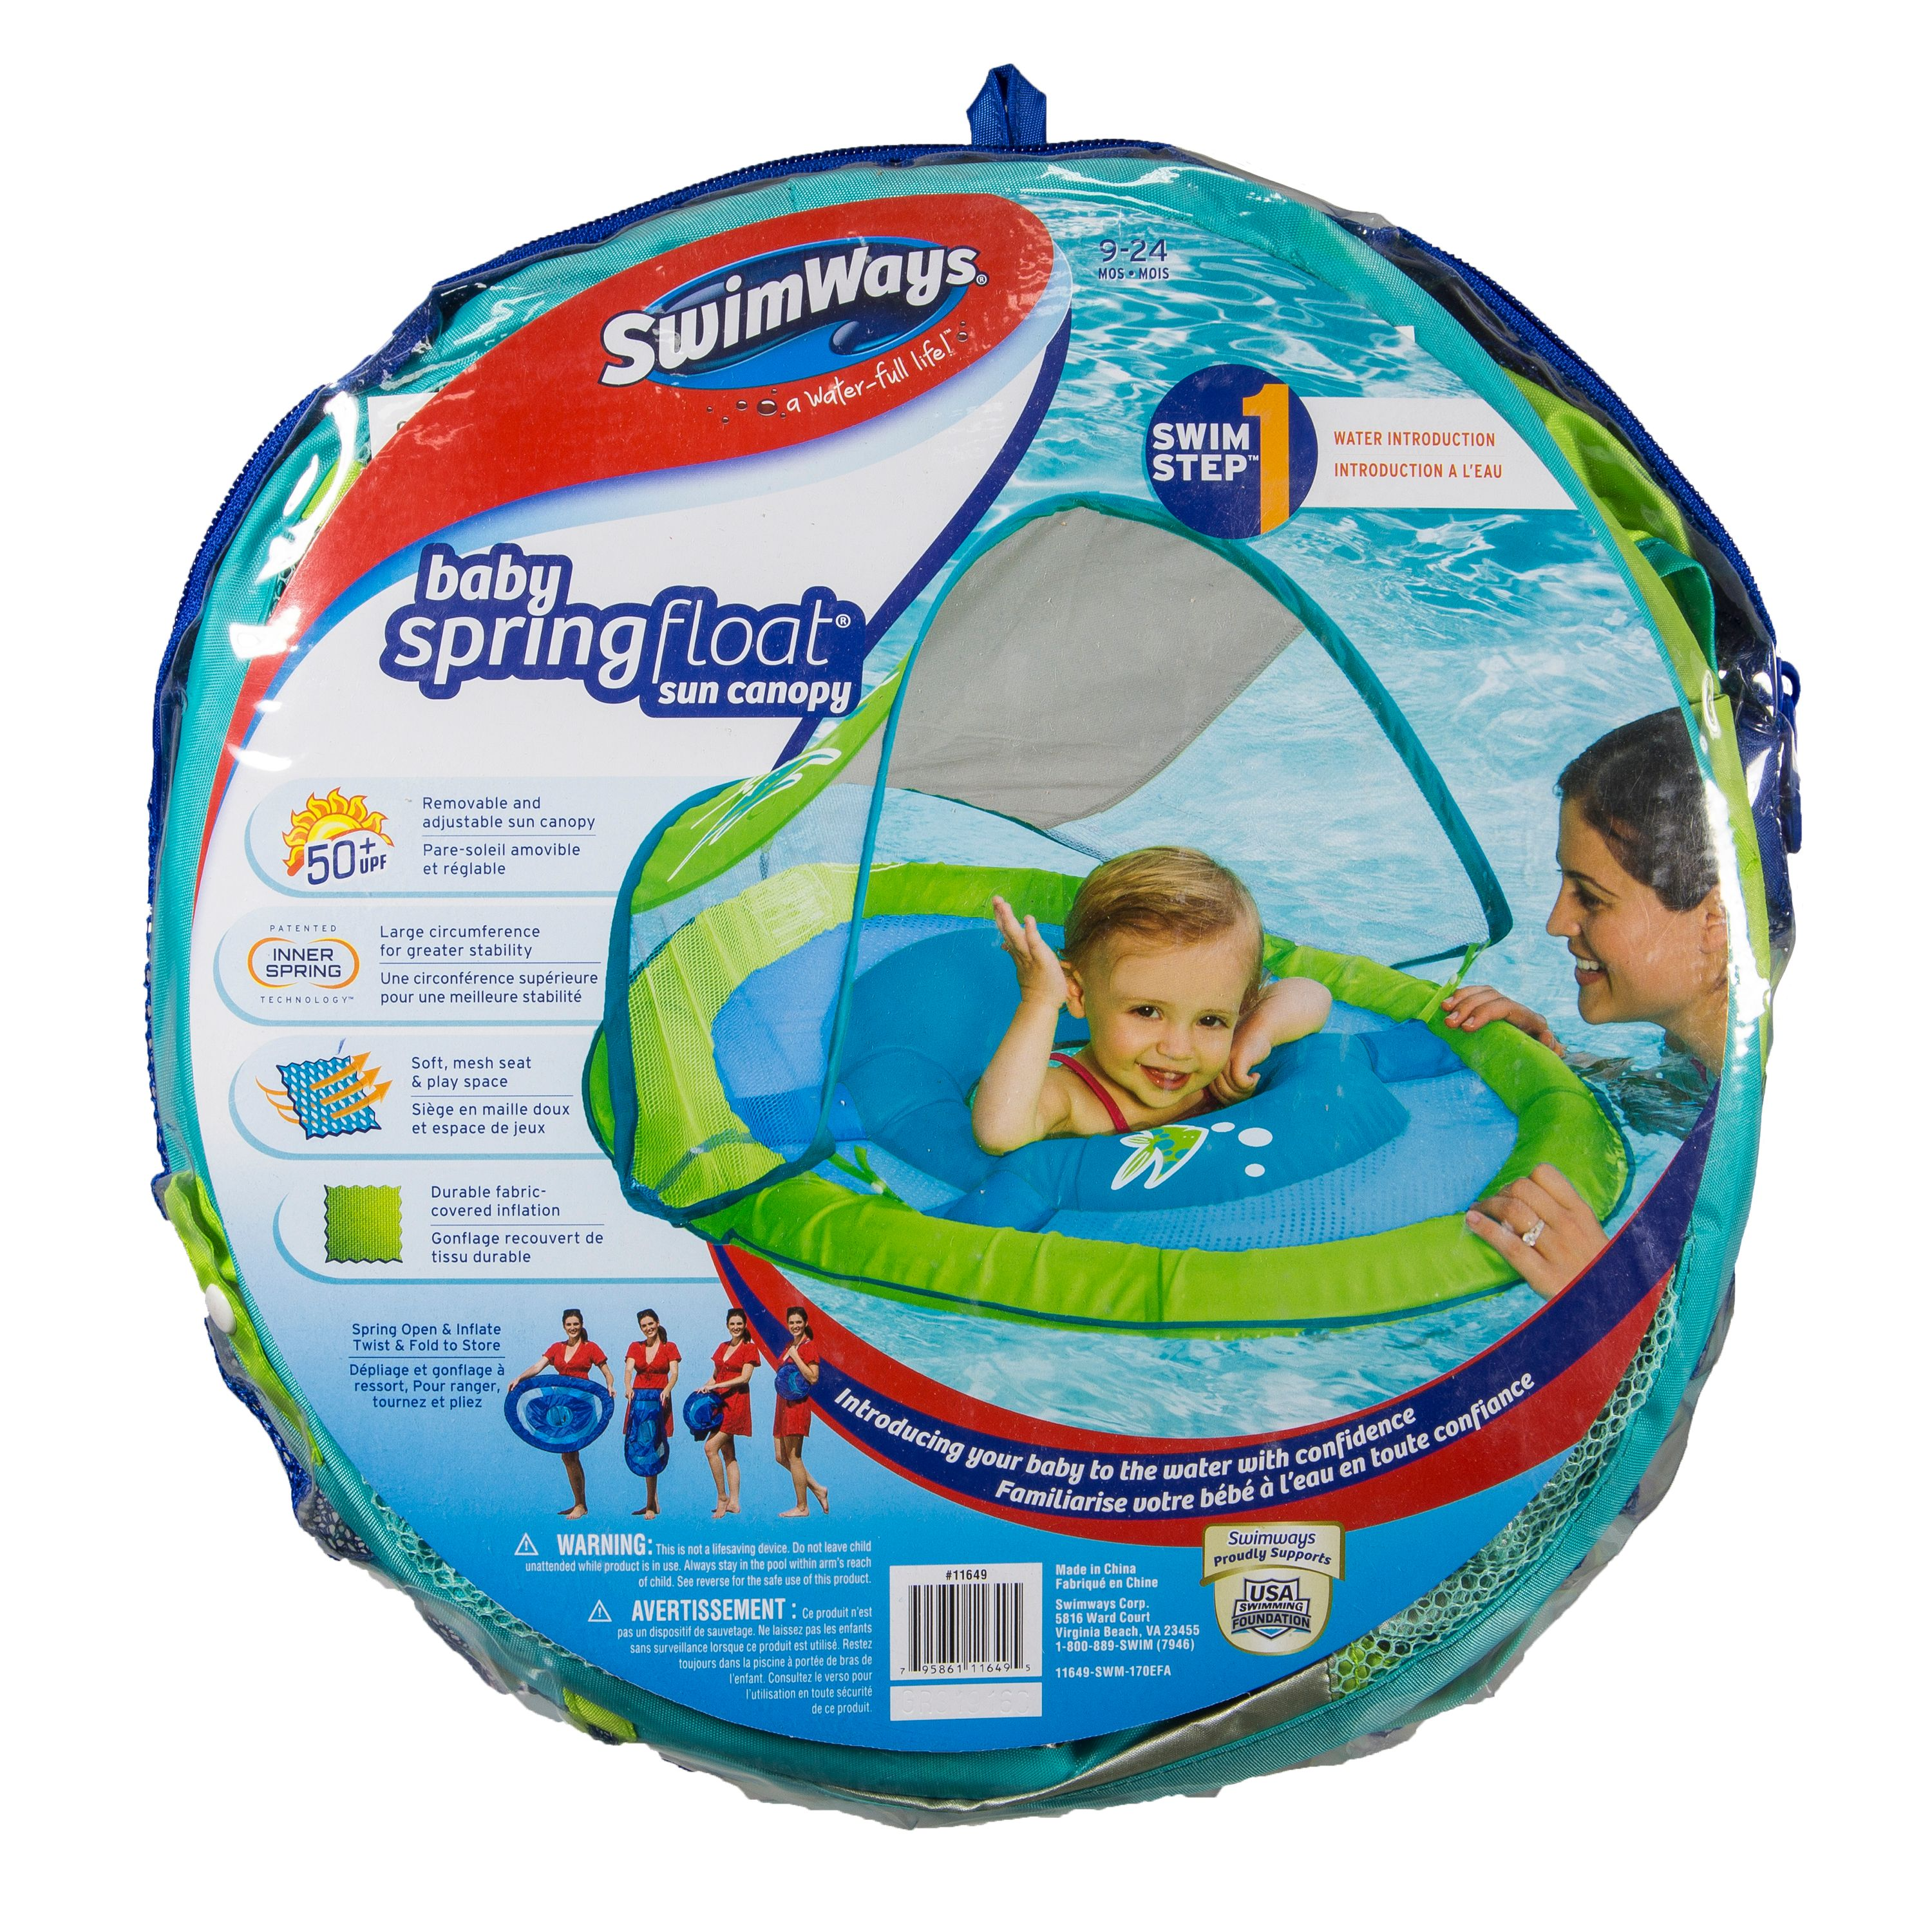 Swimways - Baby's Spring Float with Canopy